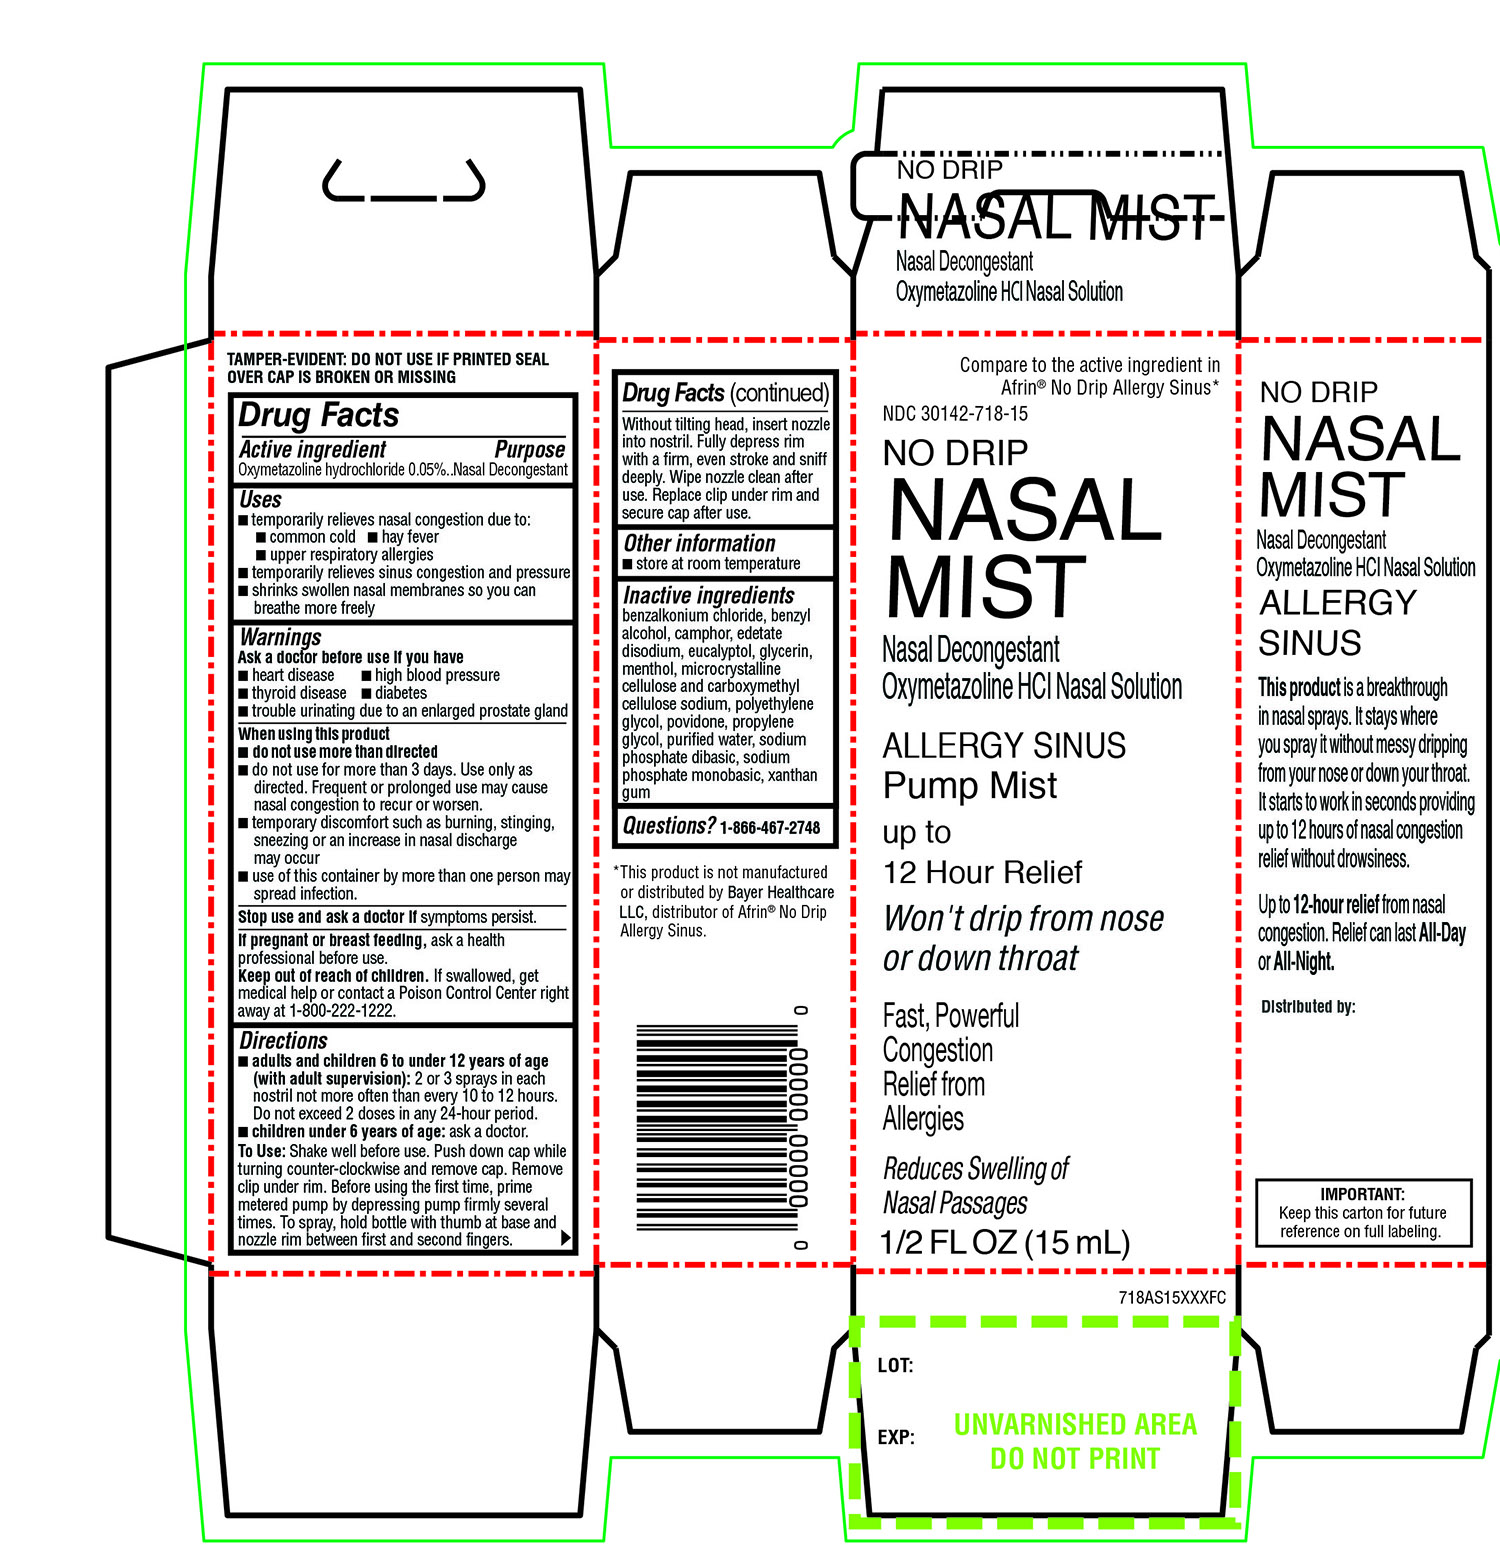 Kroger Health No Drip Allergy Nasal Mist